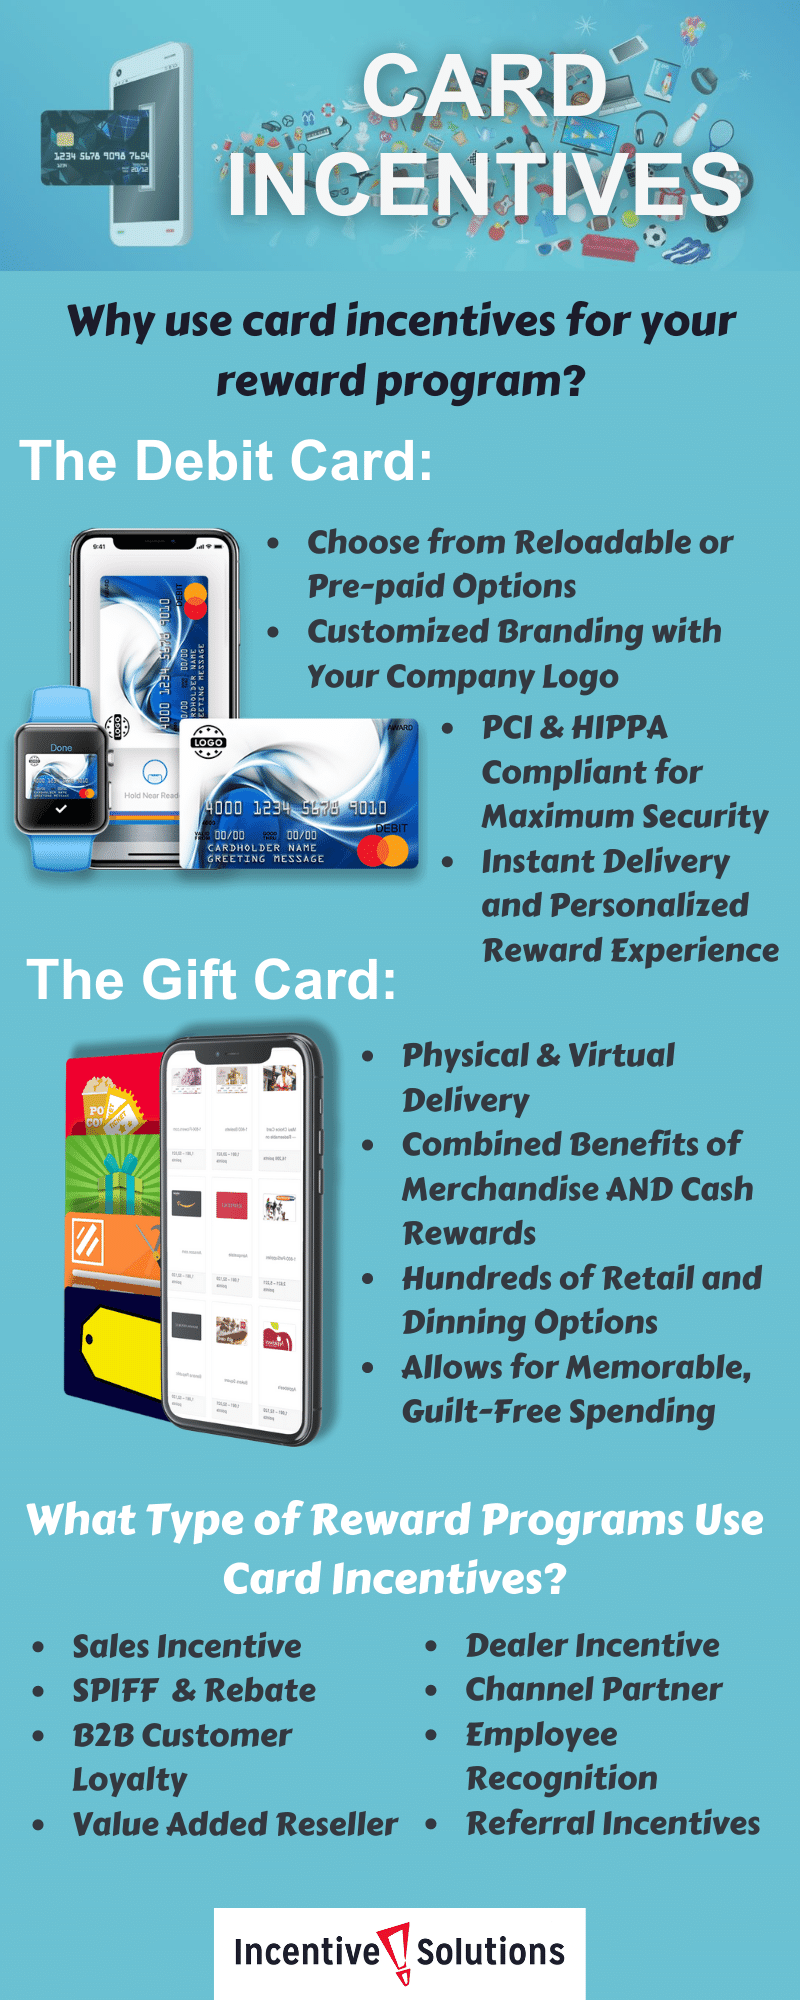 Incentive card programs